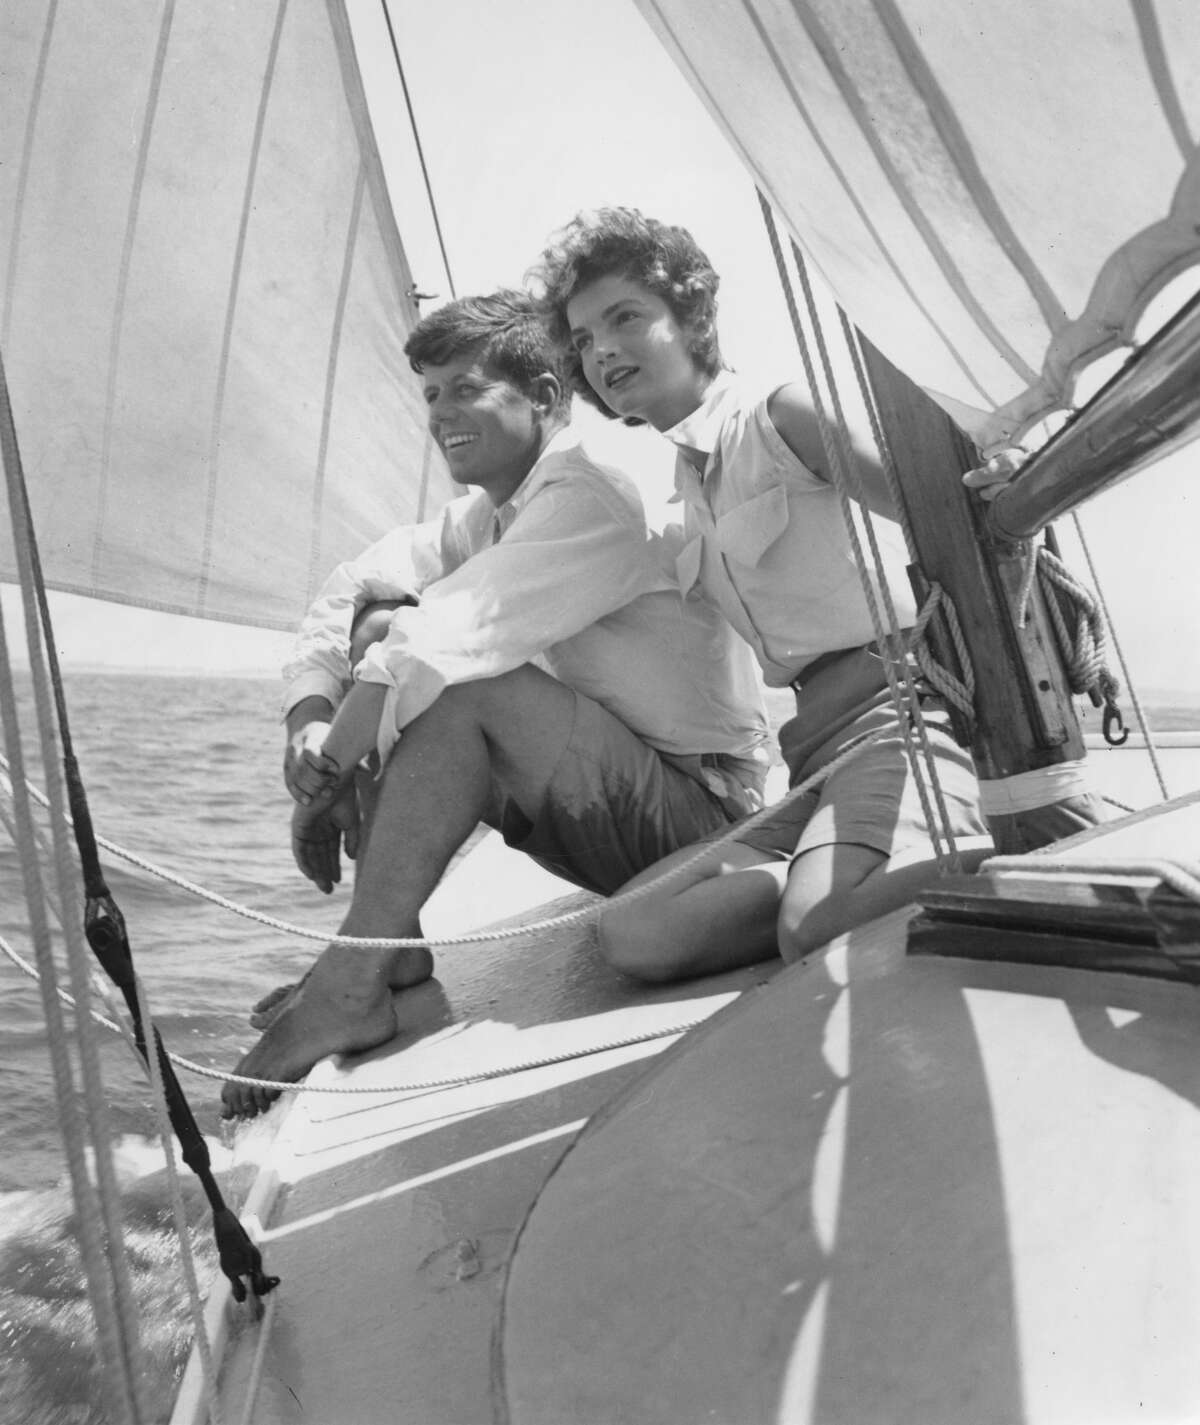 The Martha's Vineyard estate of former first lady Jacqueline Kennedy Onassis is on the market for $65 million. JUNE 1953: Senator John F. Kennedy and fiance Jacqueline Bouvier go sailing while on vacation at the Kennedy compound in June 1953 in Hyannis Port, Massachusetts. (Photo by Hy Peskin/Getty Images)